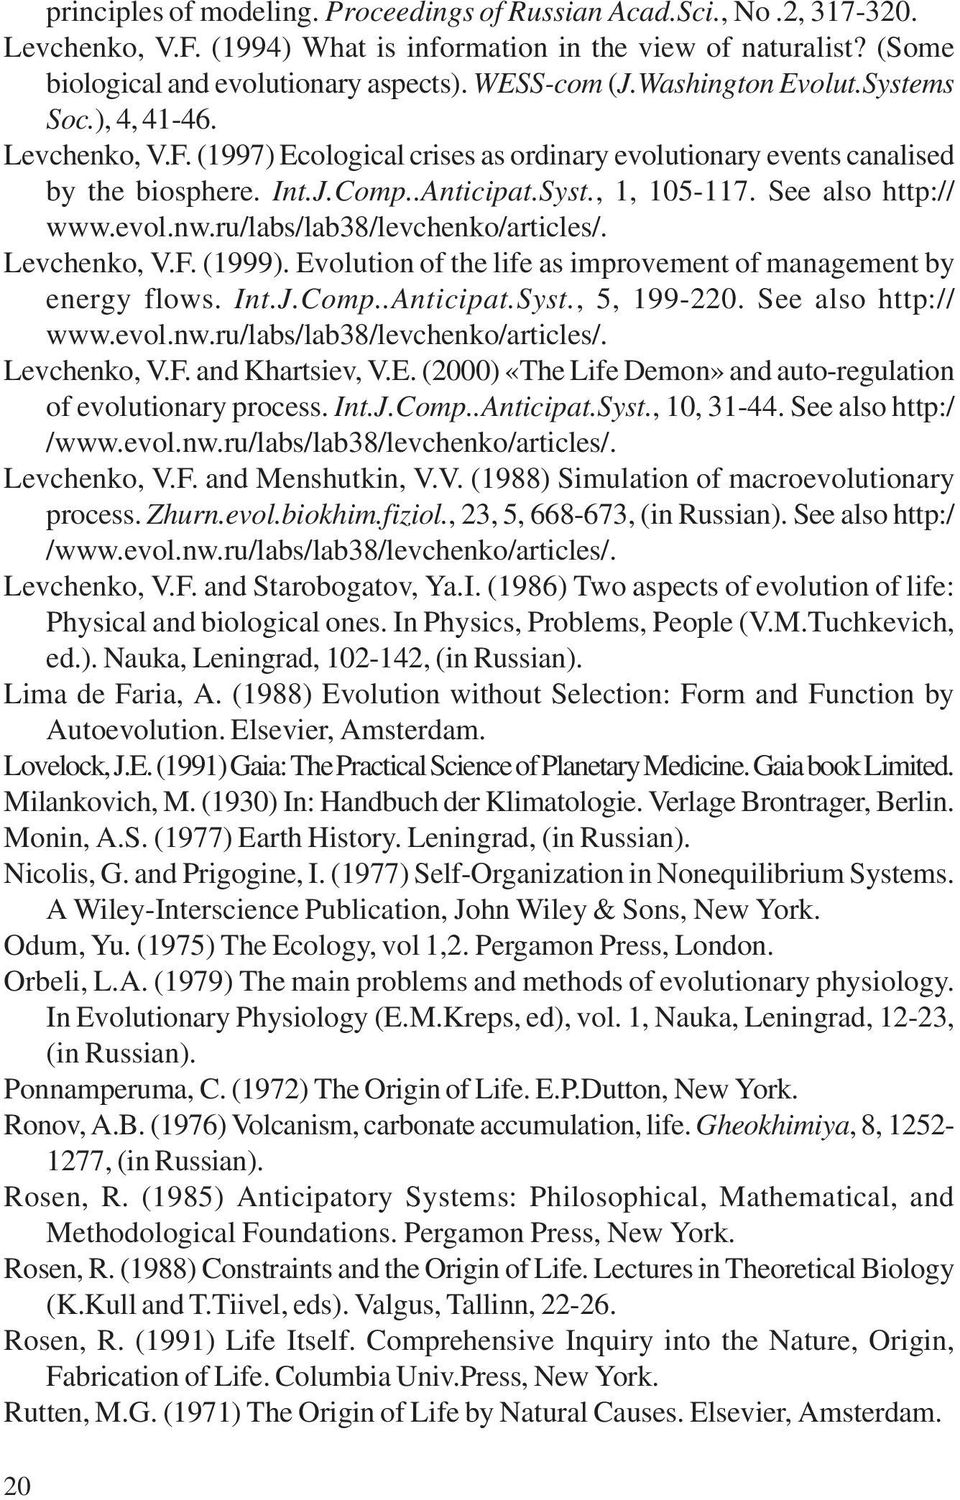 See also http:// www.evol.nw.ru/labs/lab38/levchenko/articles/. Levchenko, V.F. (1999). Evolution of the life as improvement of management by energy flows. Int.J.Comp..Anticipat.Syst., 5, 199-220.